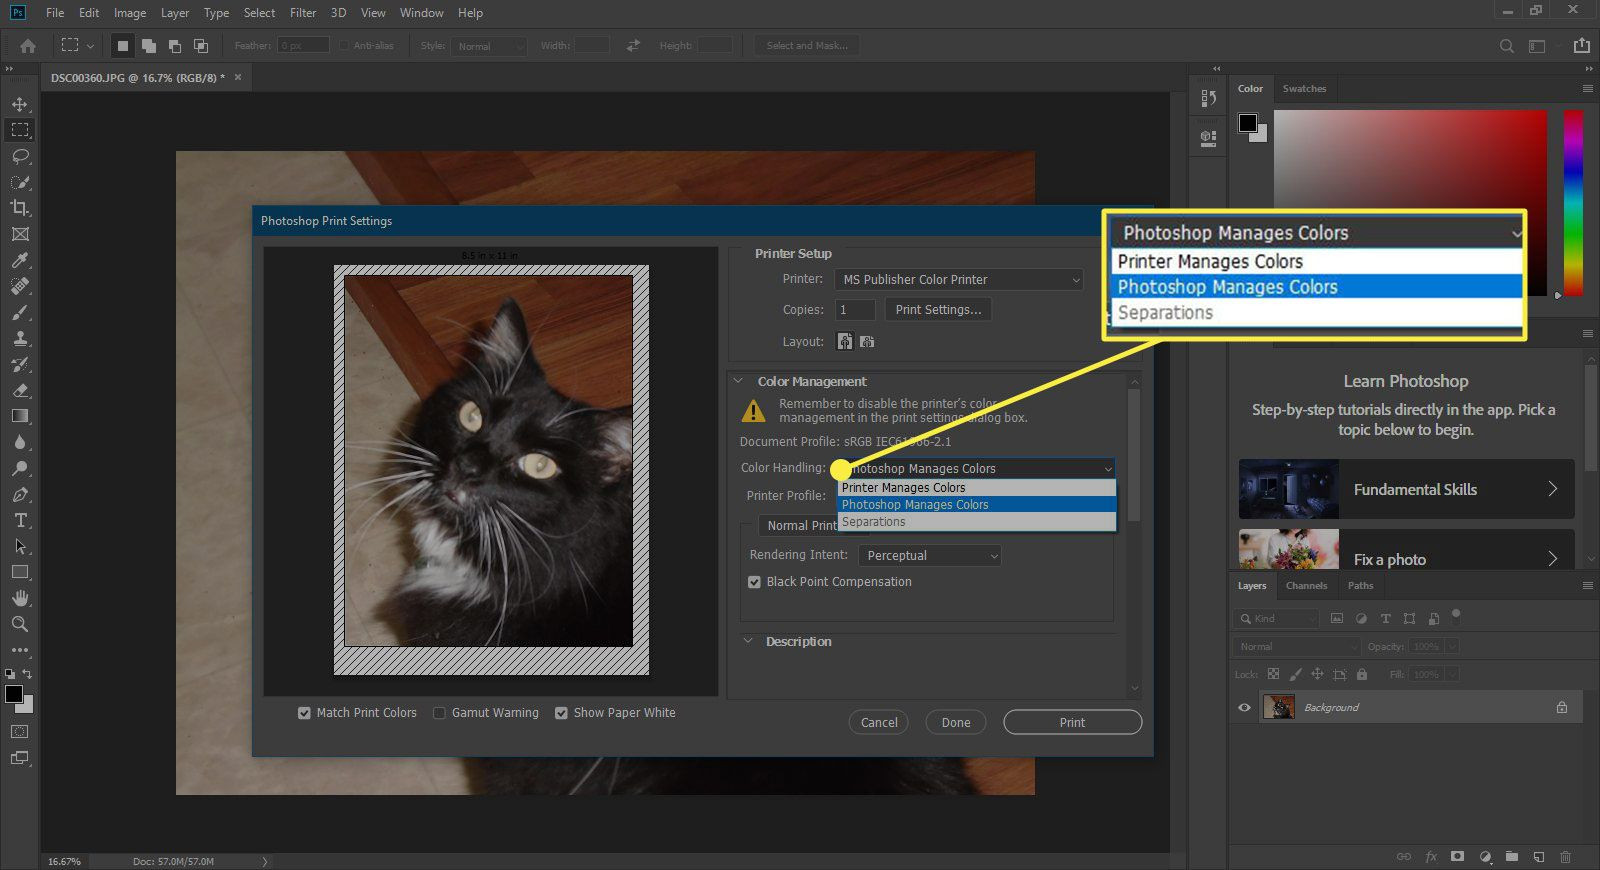 A screenshot of Photoshop's Print window with the Color Handling options highlighted